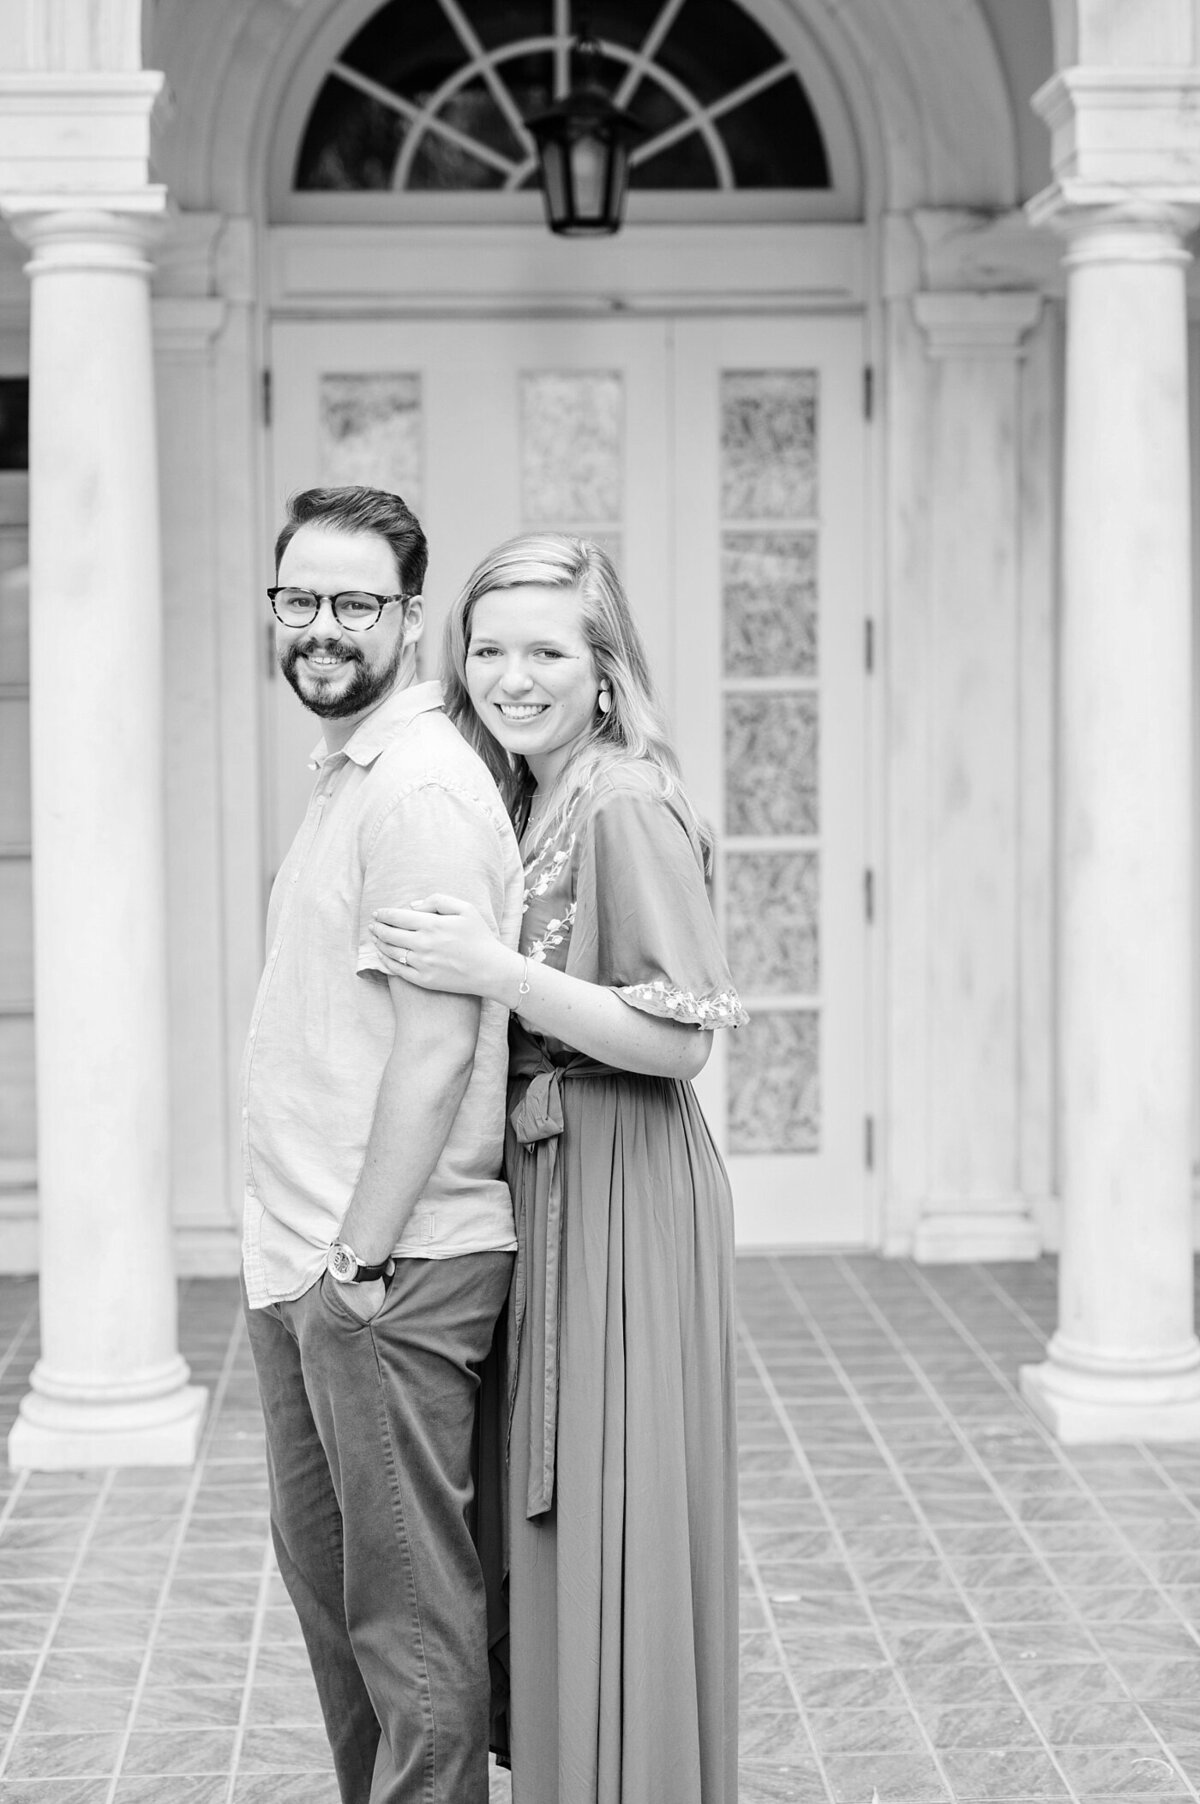 cator-woolford-gardens-engagement-wedding-photographer-laura-barnes-photo-shackelford-27